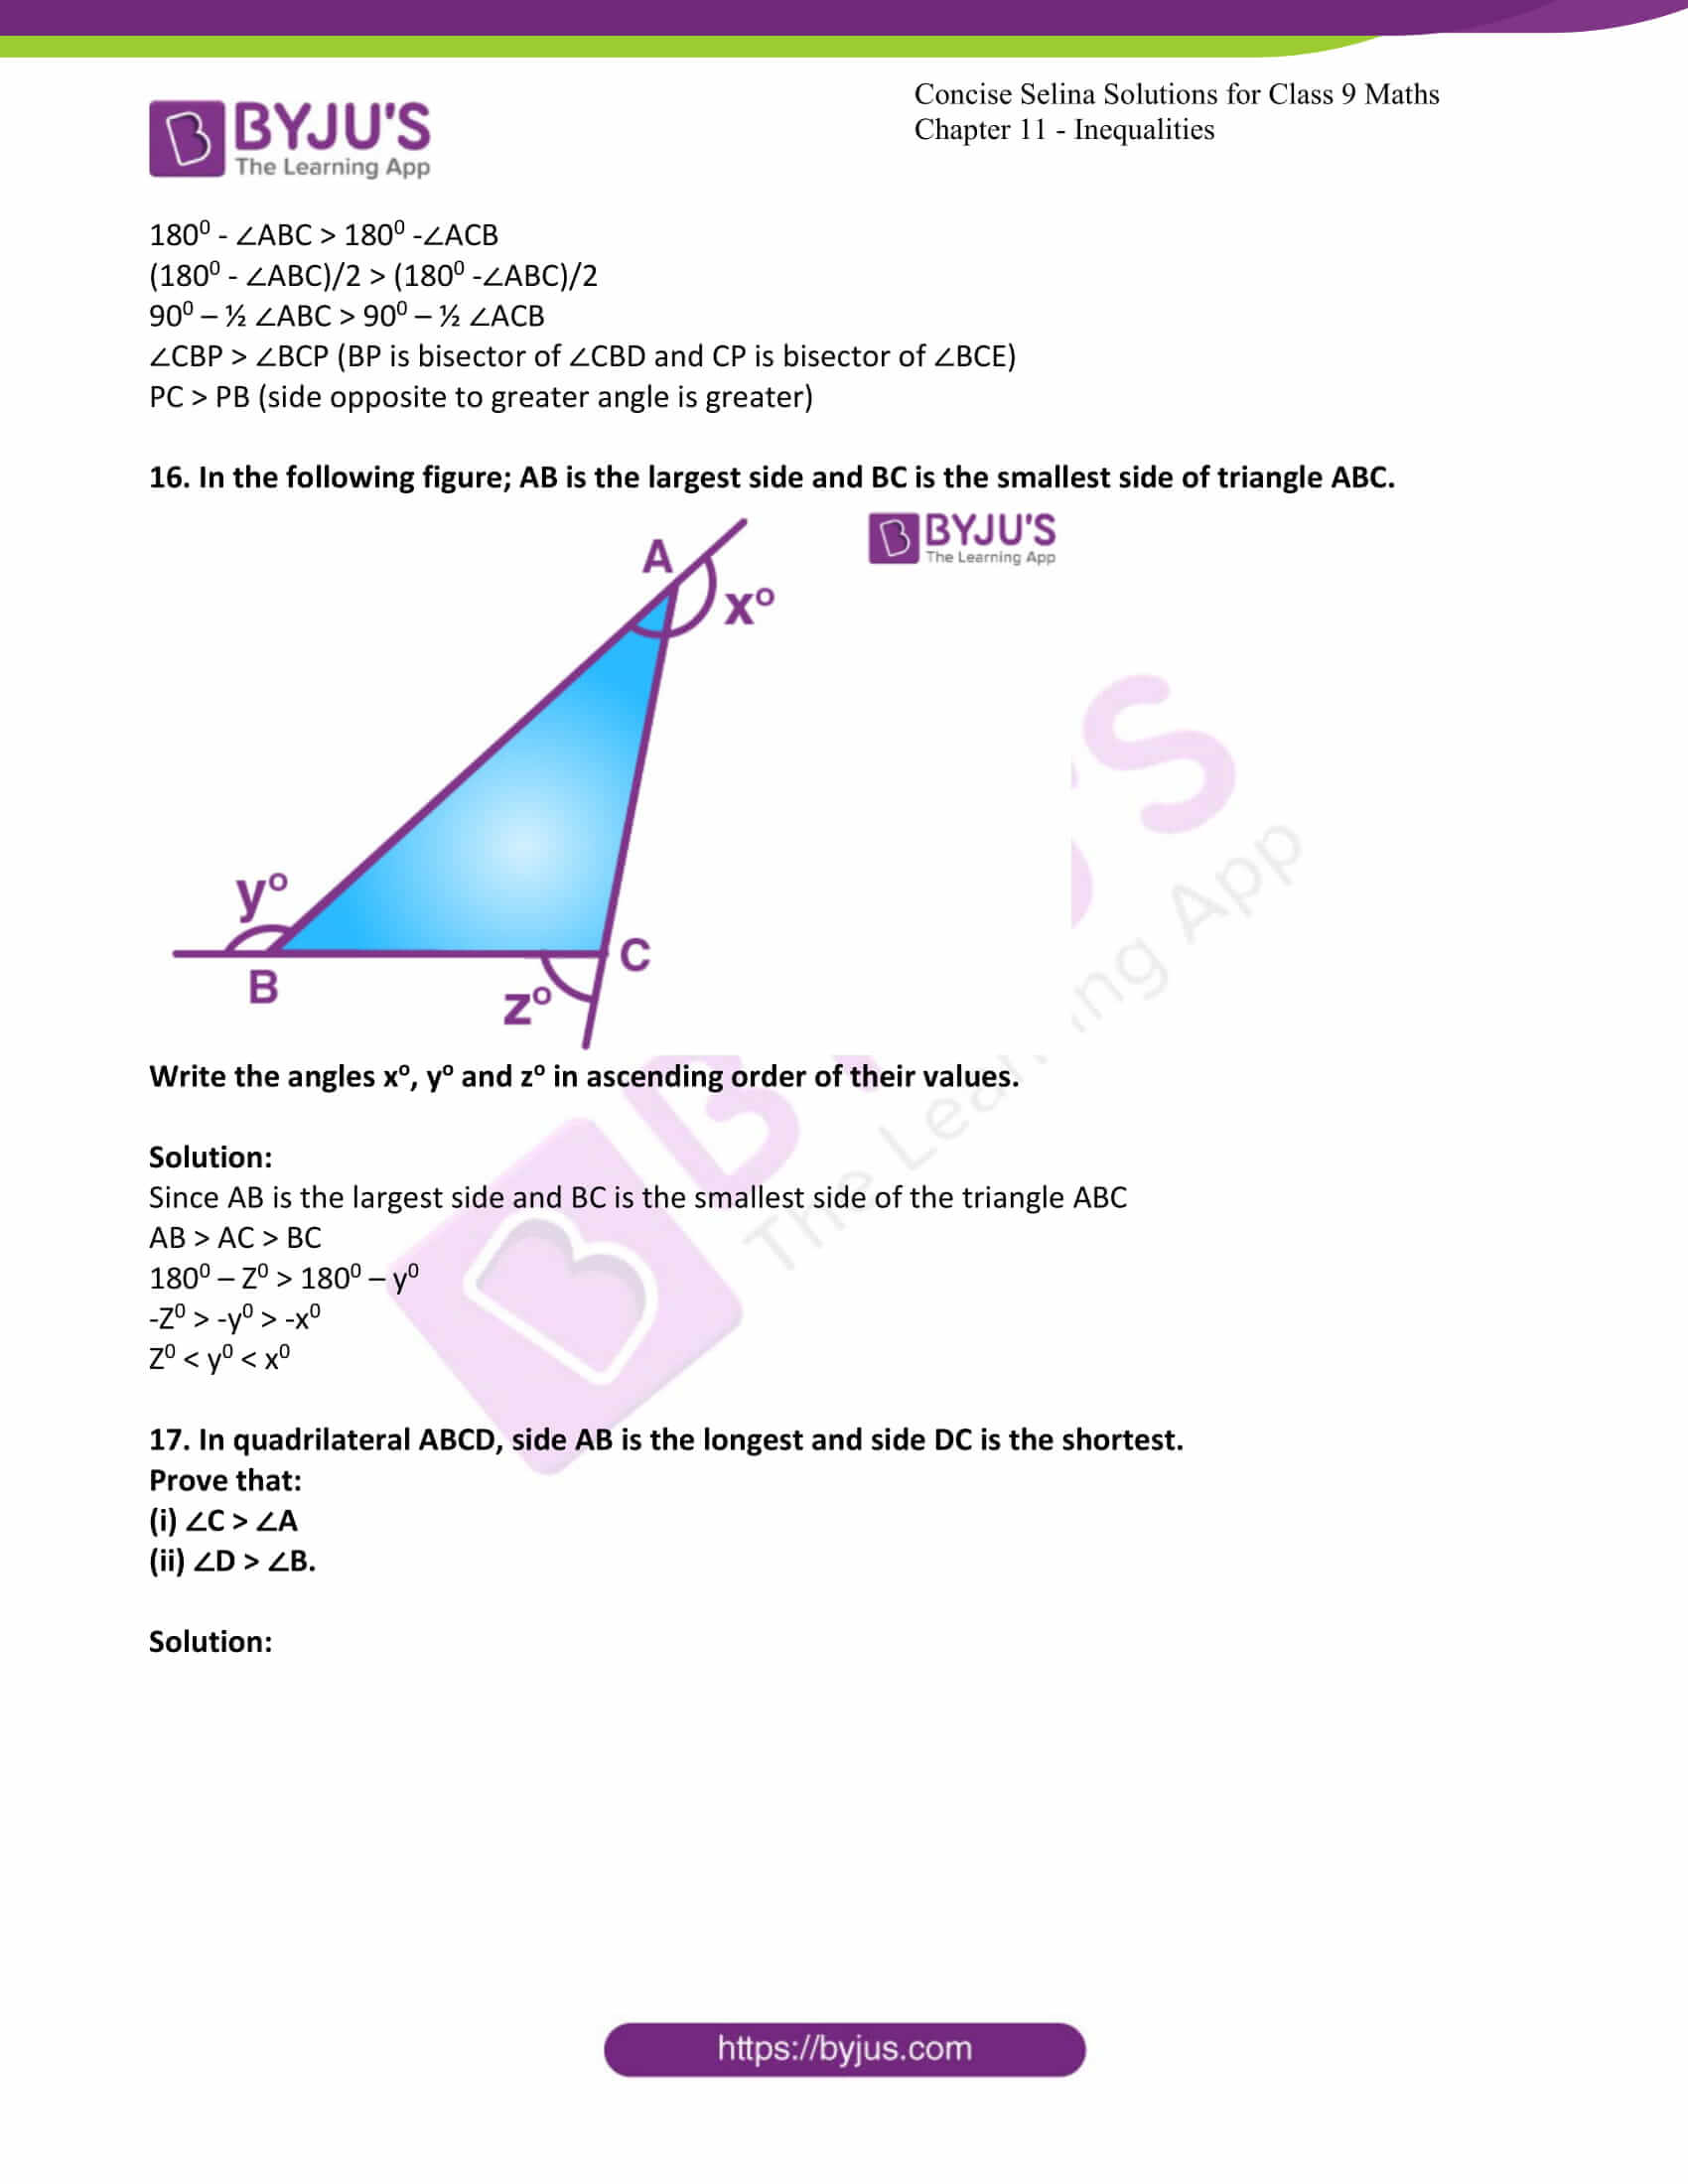 icse class 9 maths may10 selina solutions chapter 11 inequalities 15